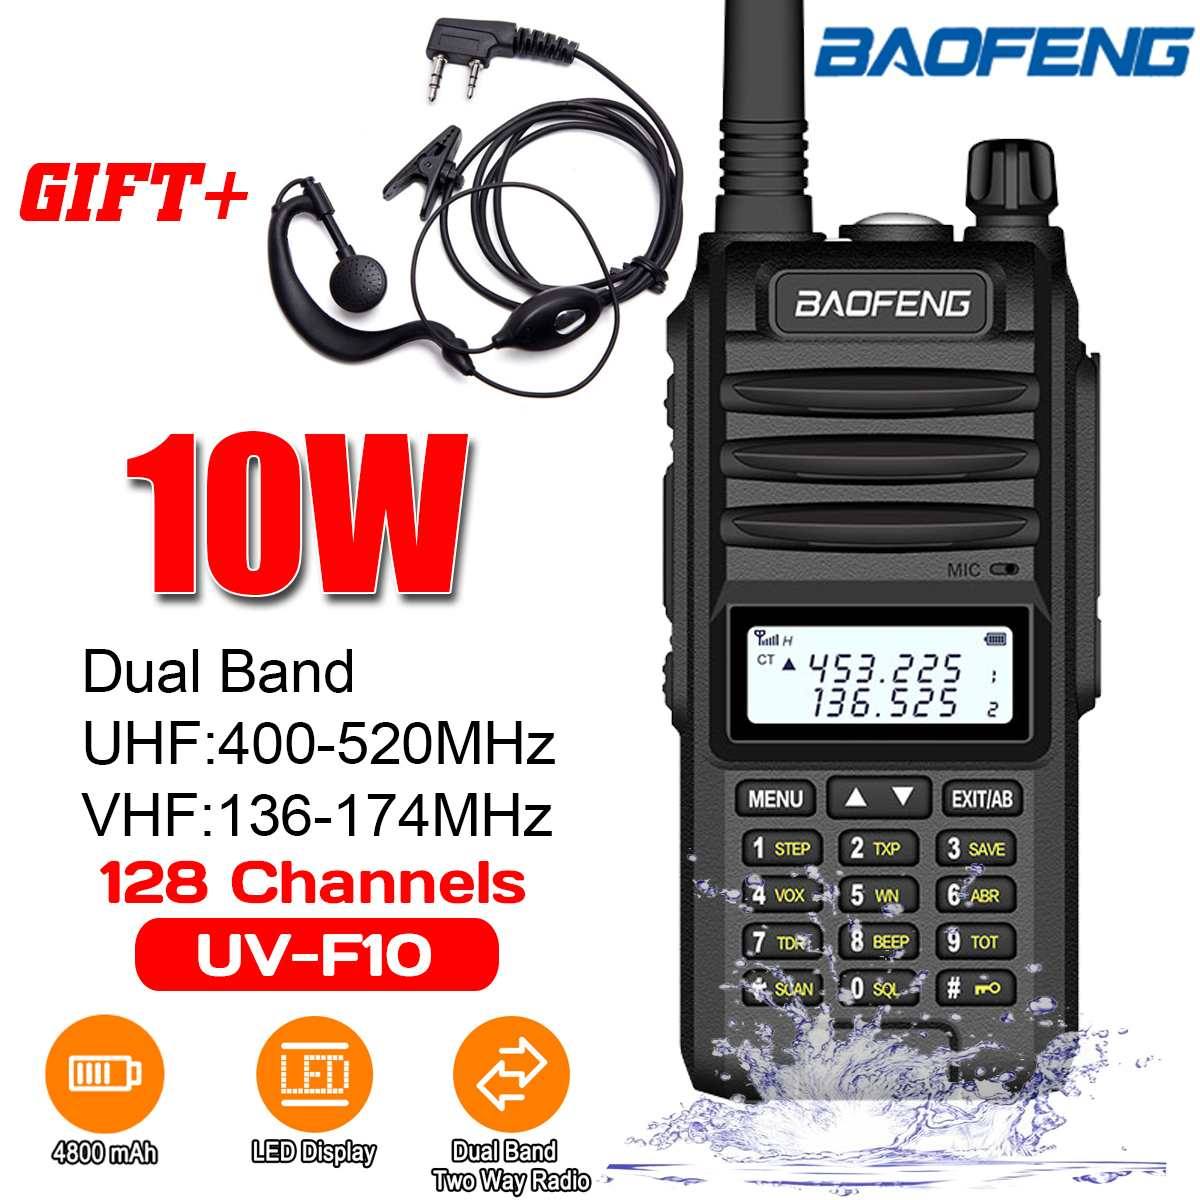 Baofeng BF-UVF10 Walkie Talkie VHF UHF 10W Waterproof Walkie Talki Dual Band Handheld Two Way Radio 520MHz 128 Channels Radio